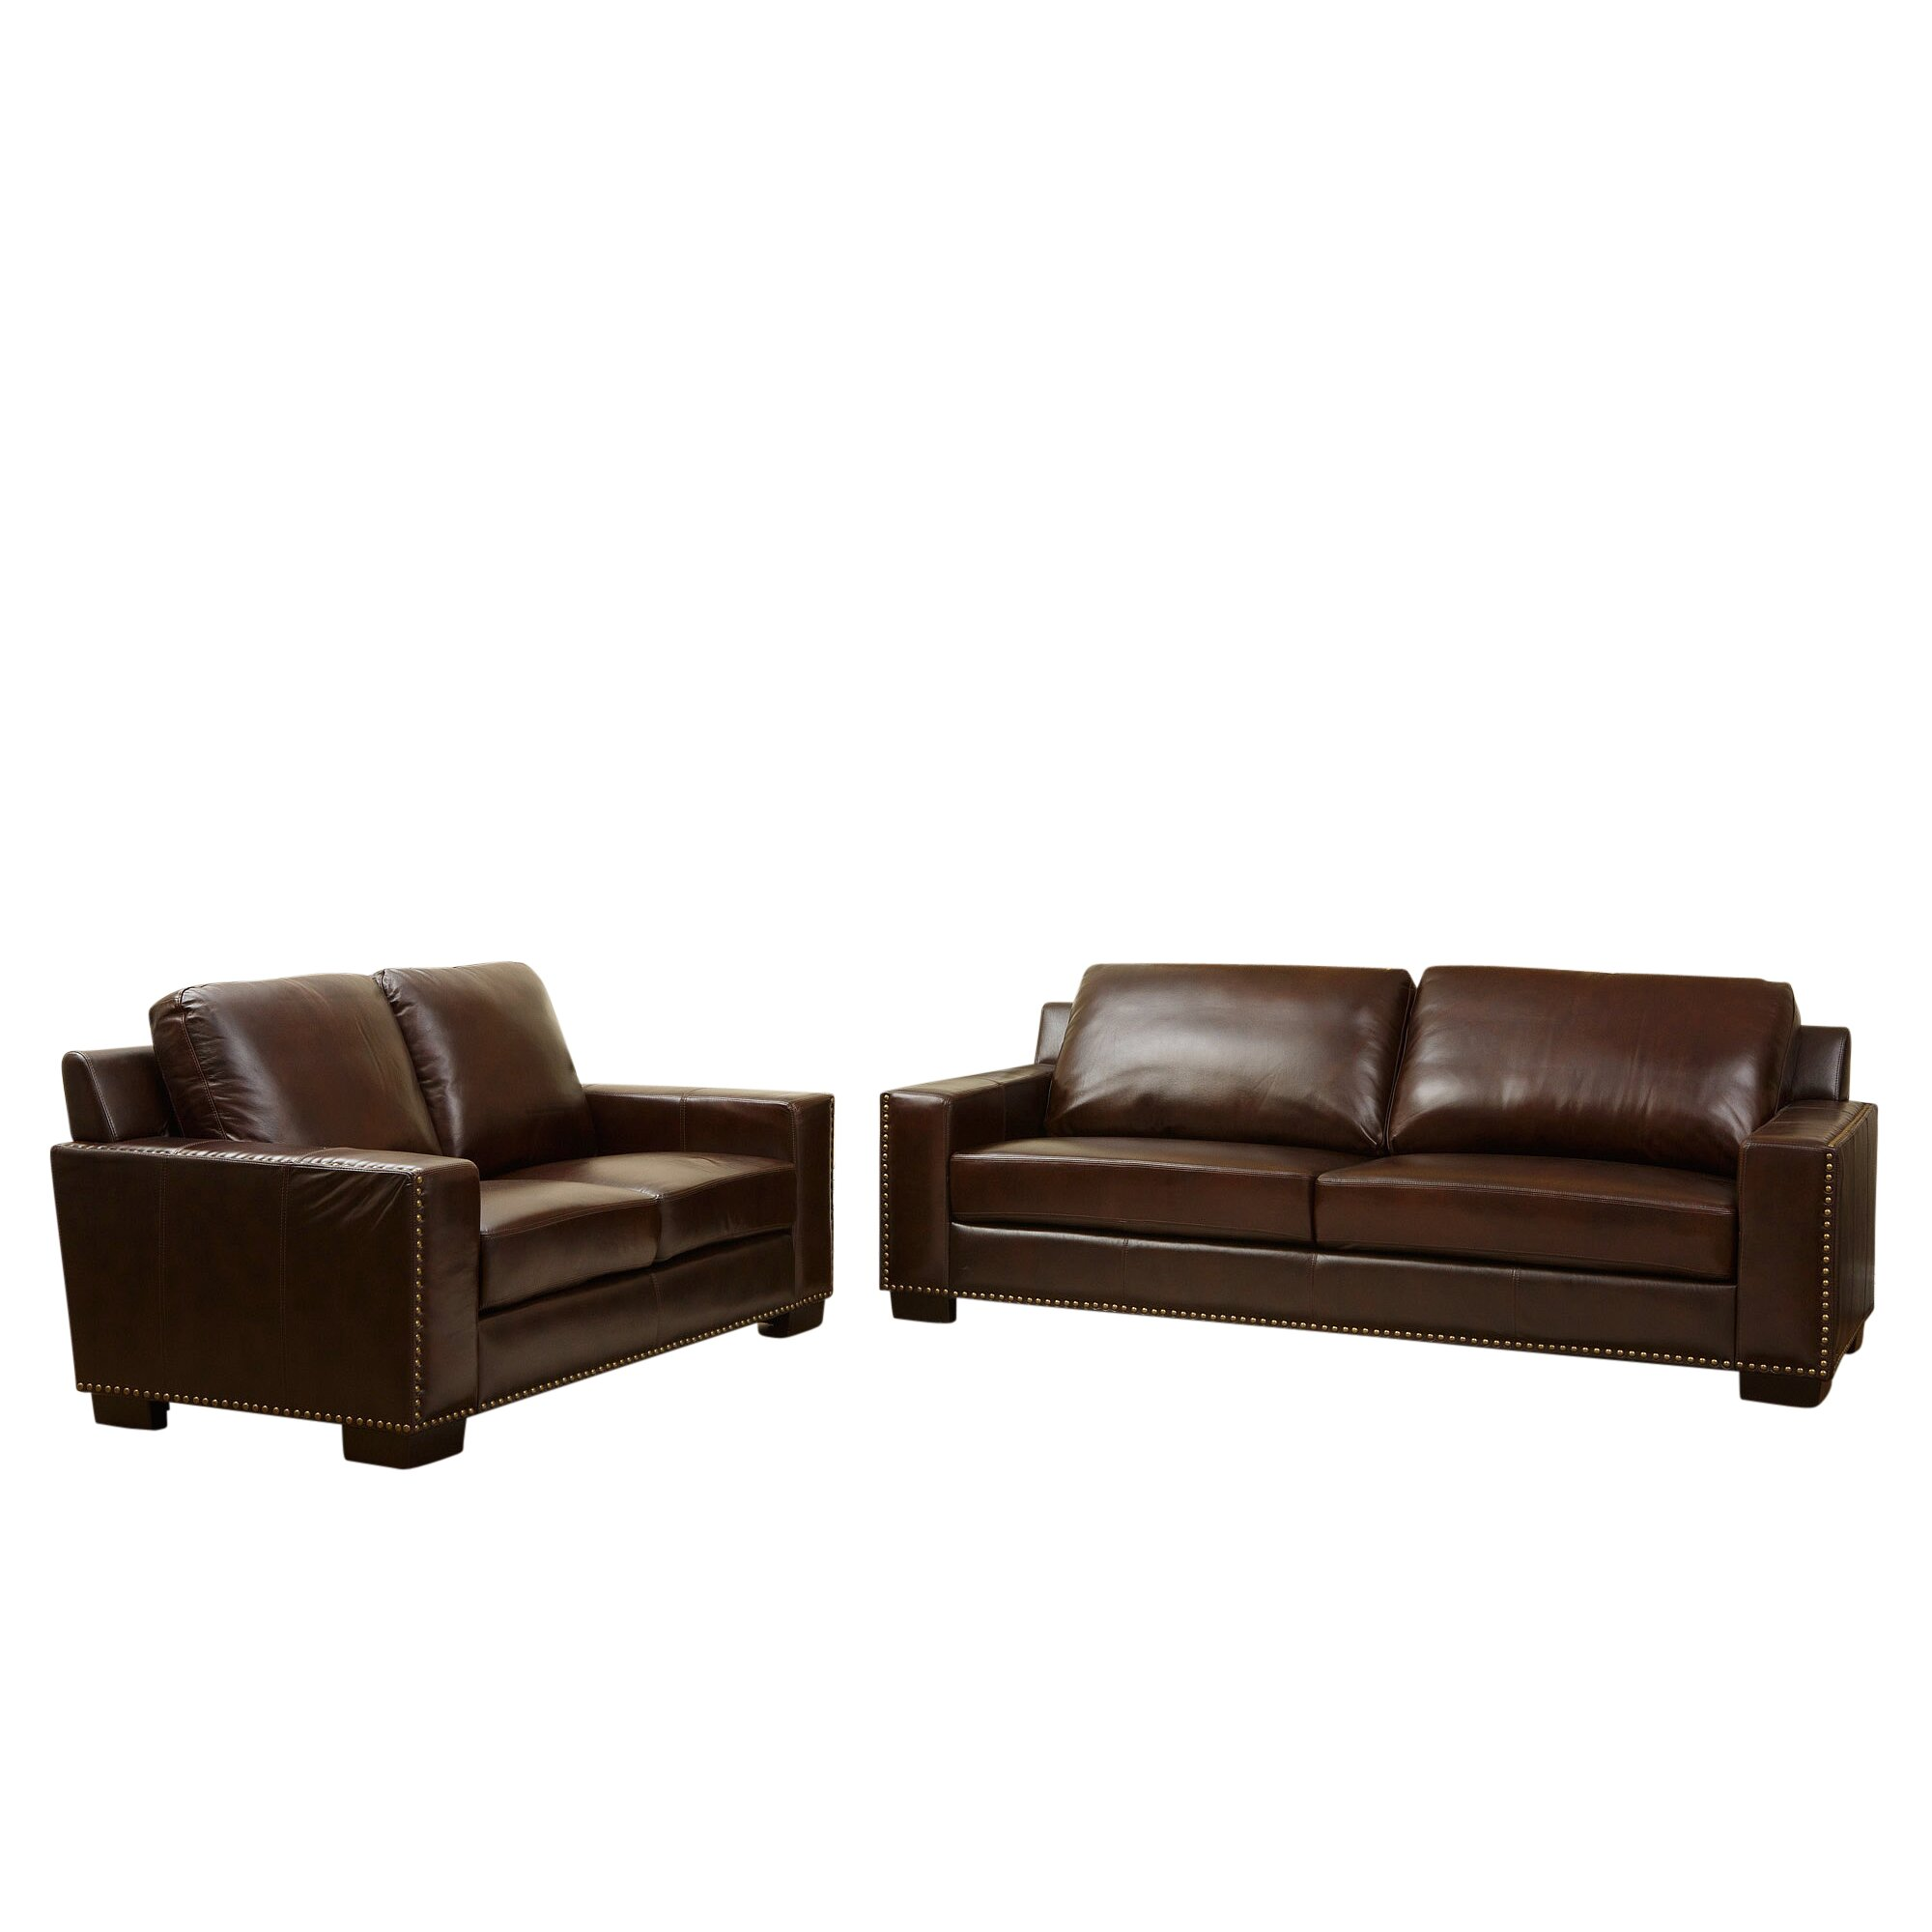 Darby home co william leather sofa and loveseat set for Leather sofa and loveseat set